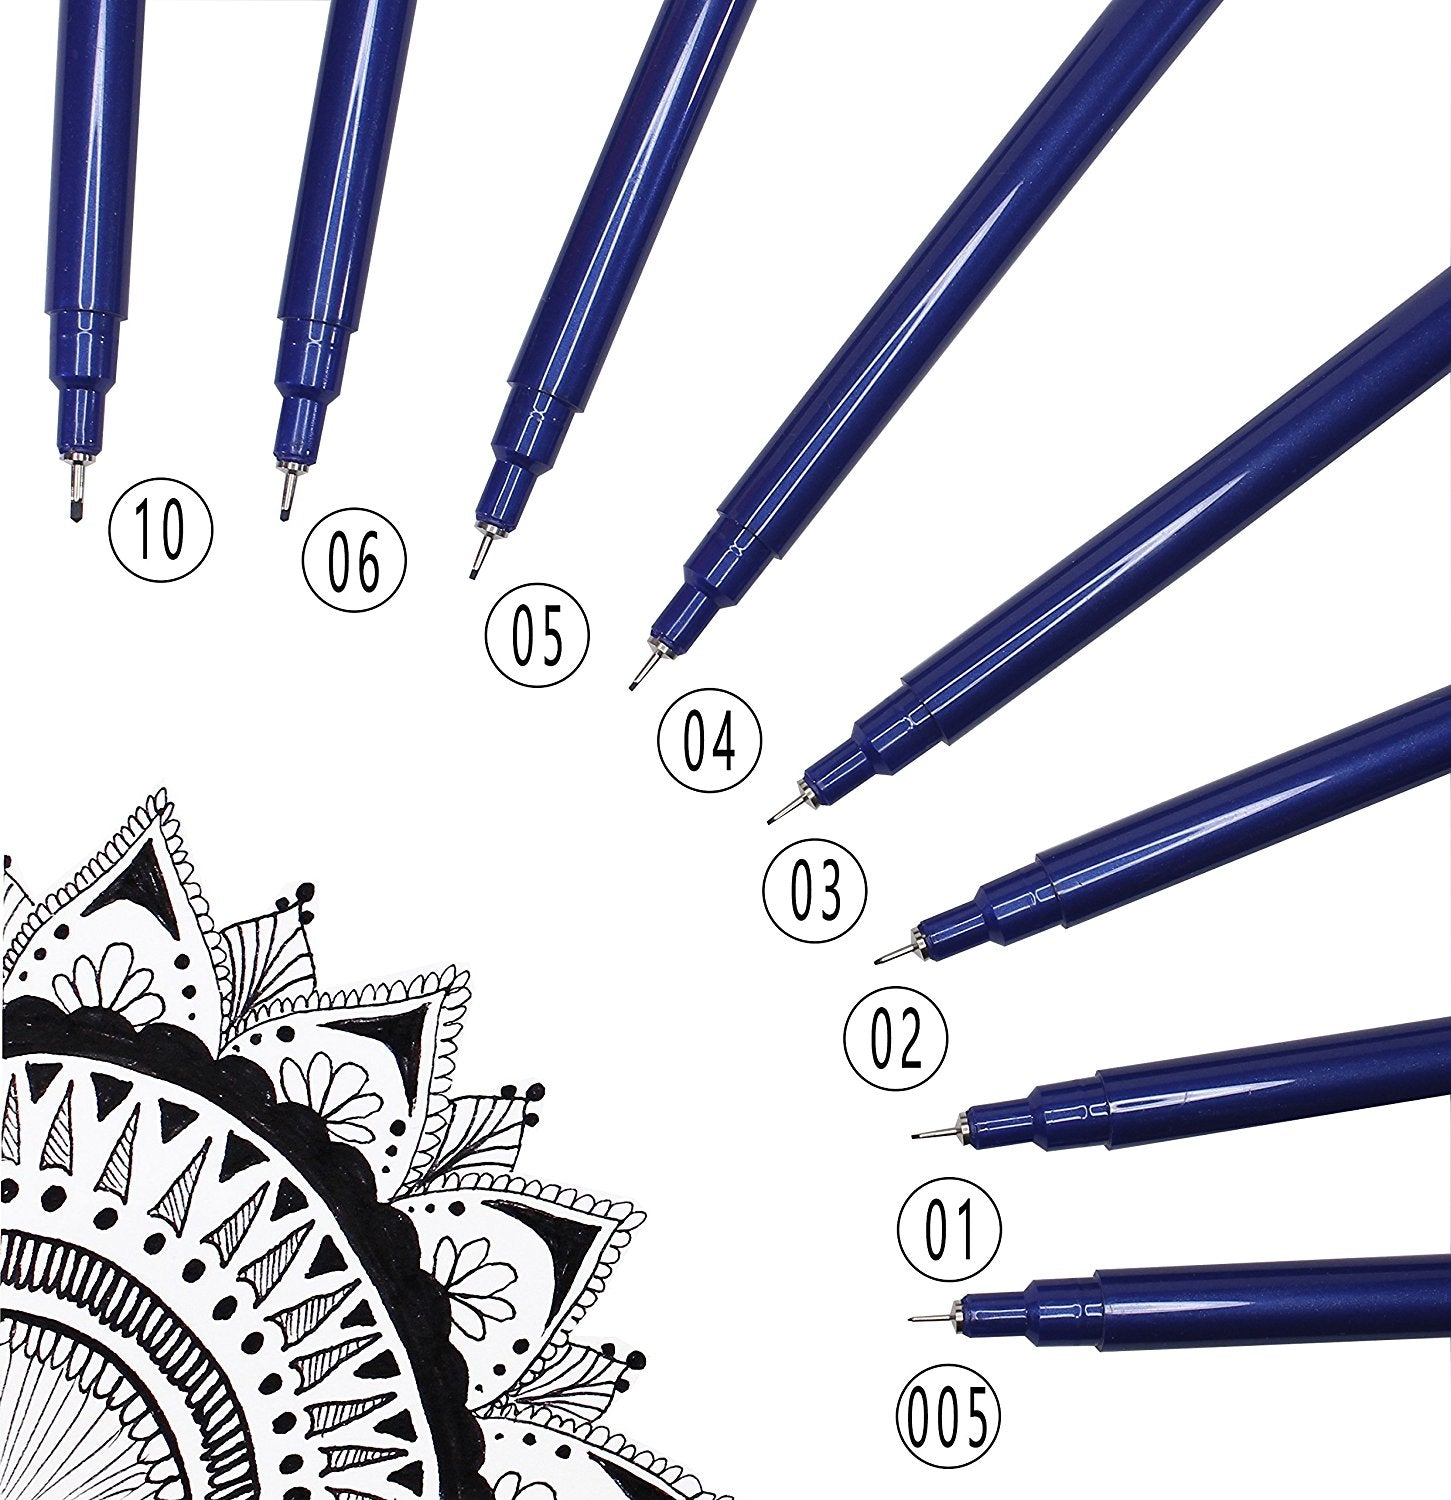 Microline Pens: Set of 8 Varying Sized Fine Tip Pens from 0.05 to 1.0mm - Black Ink